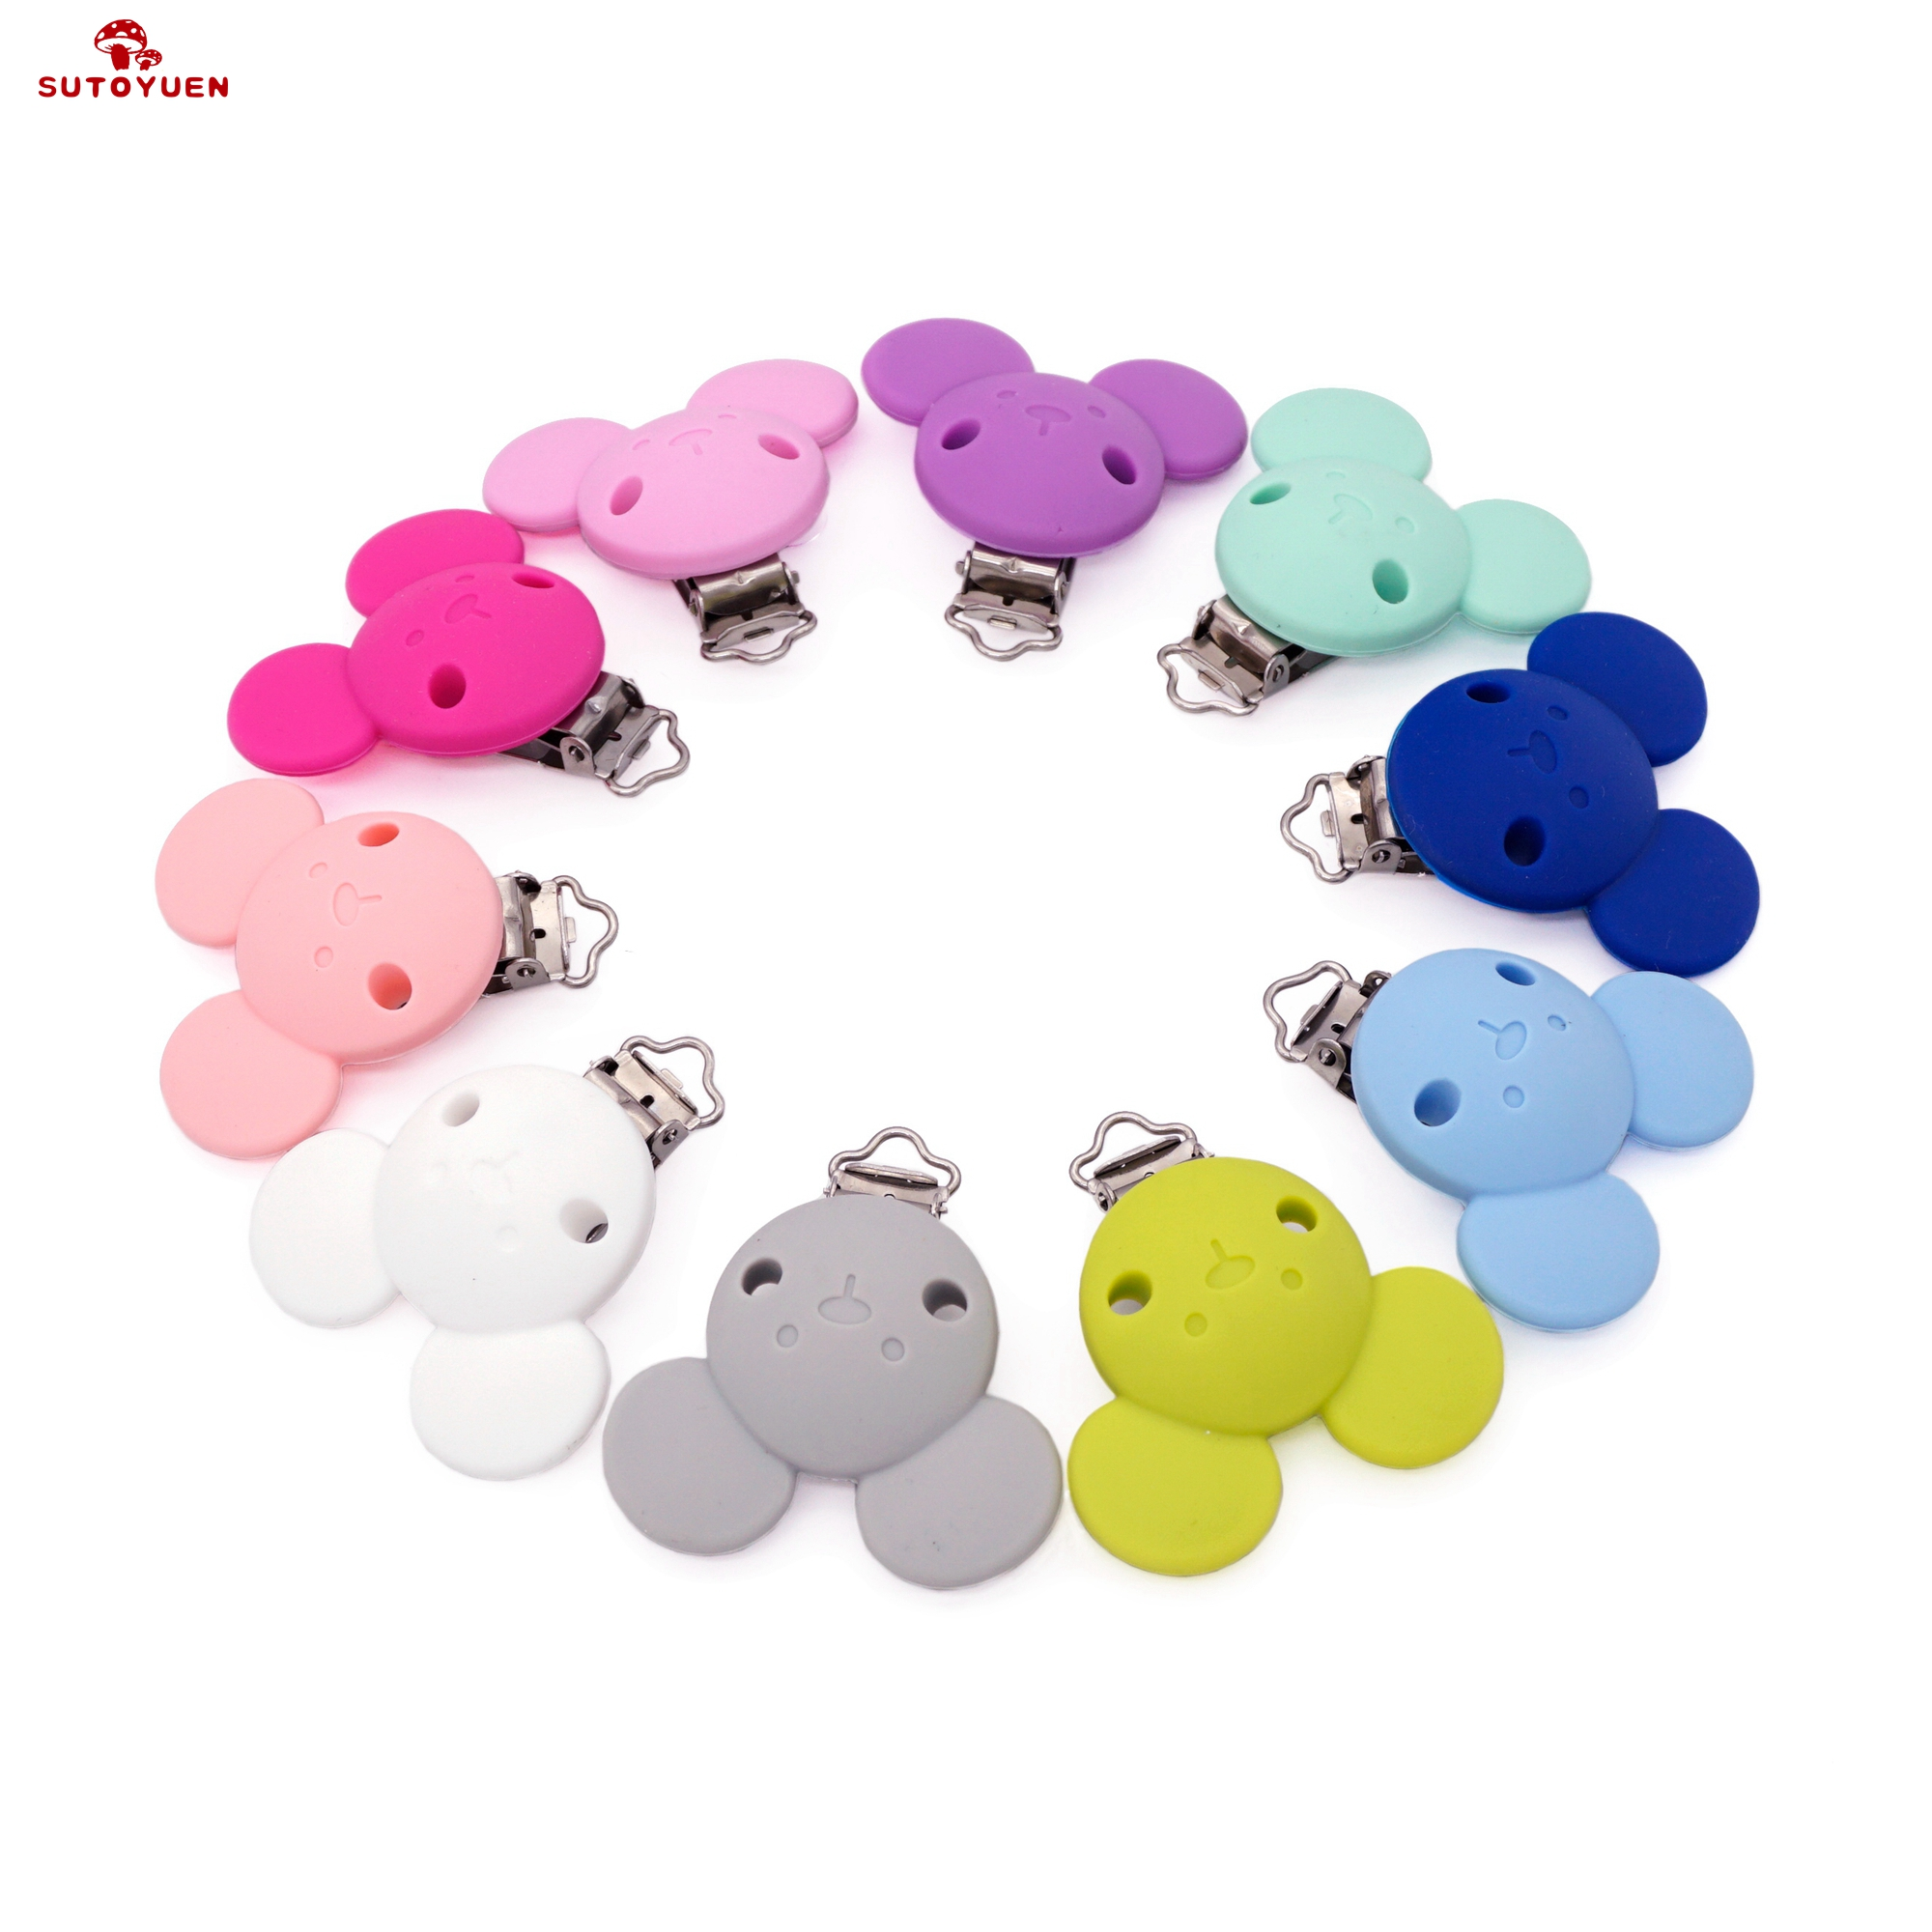 Sutoyuen 10PCS BPA Free Baby Mickey Silicone Pacifier Clips Dummy Teether Chain Holder Clips DIY Mouse Animal Toy Accessories